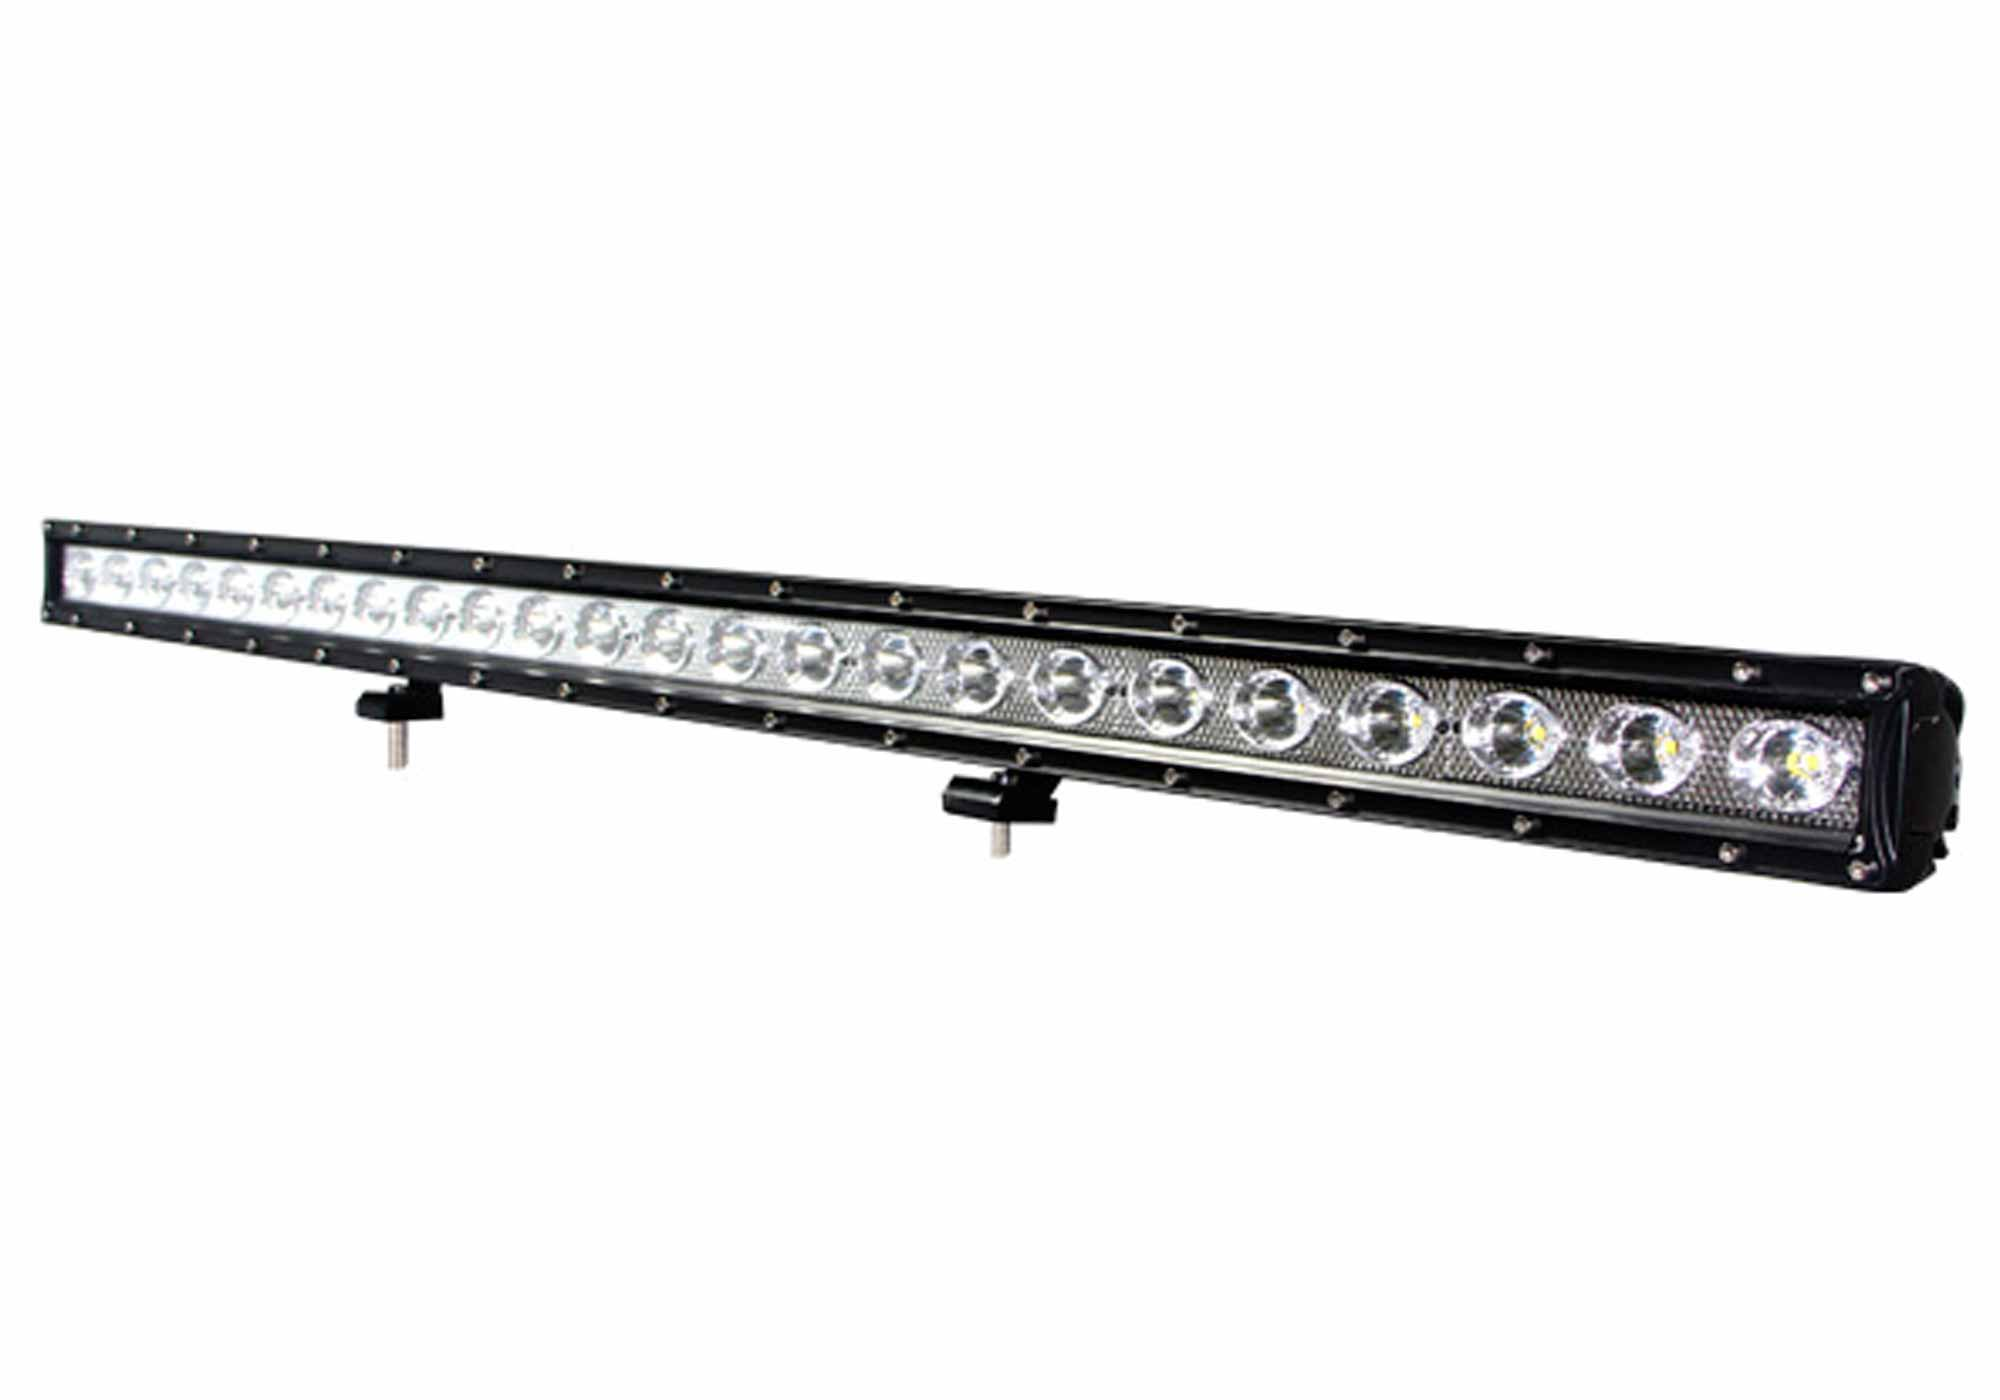 lava series led light bar - 40 inch 120 watt